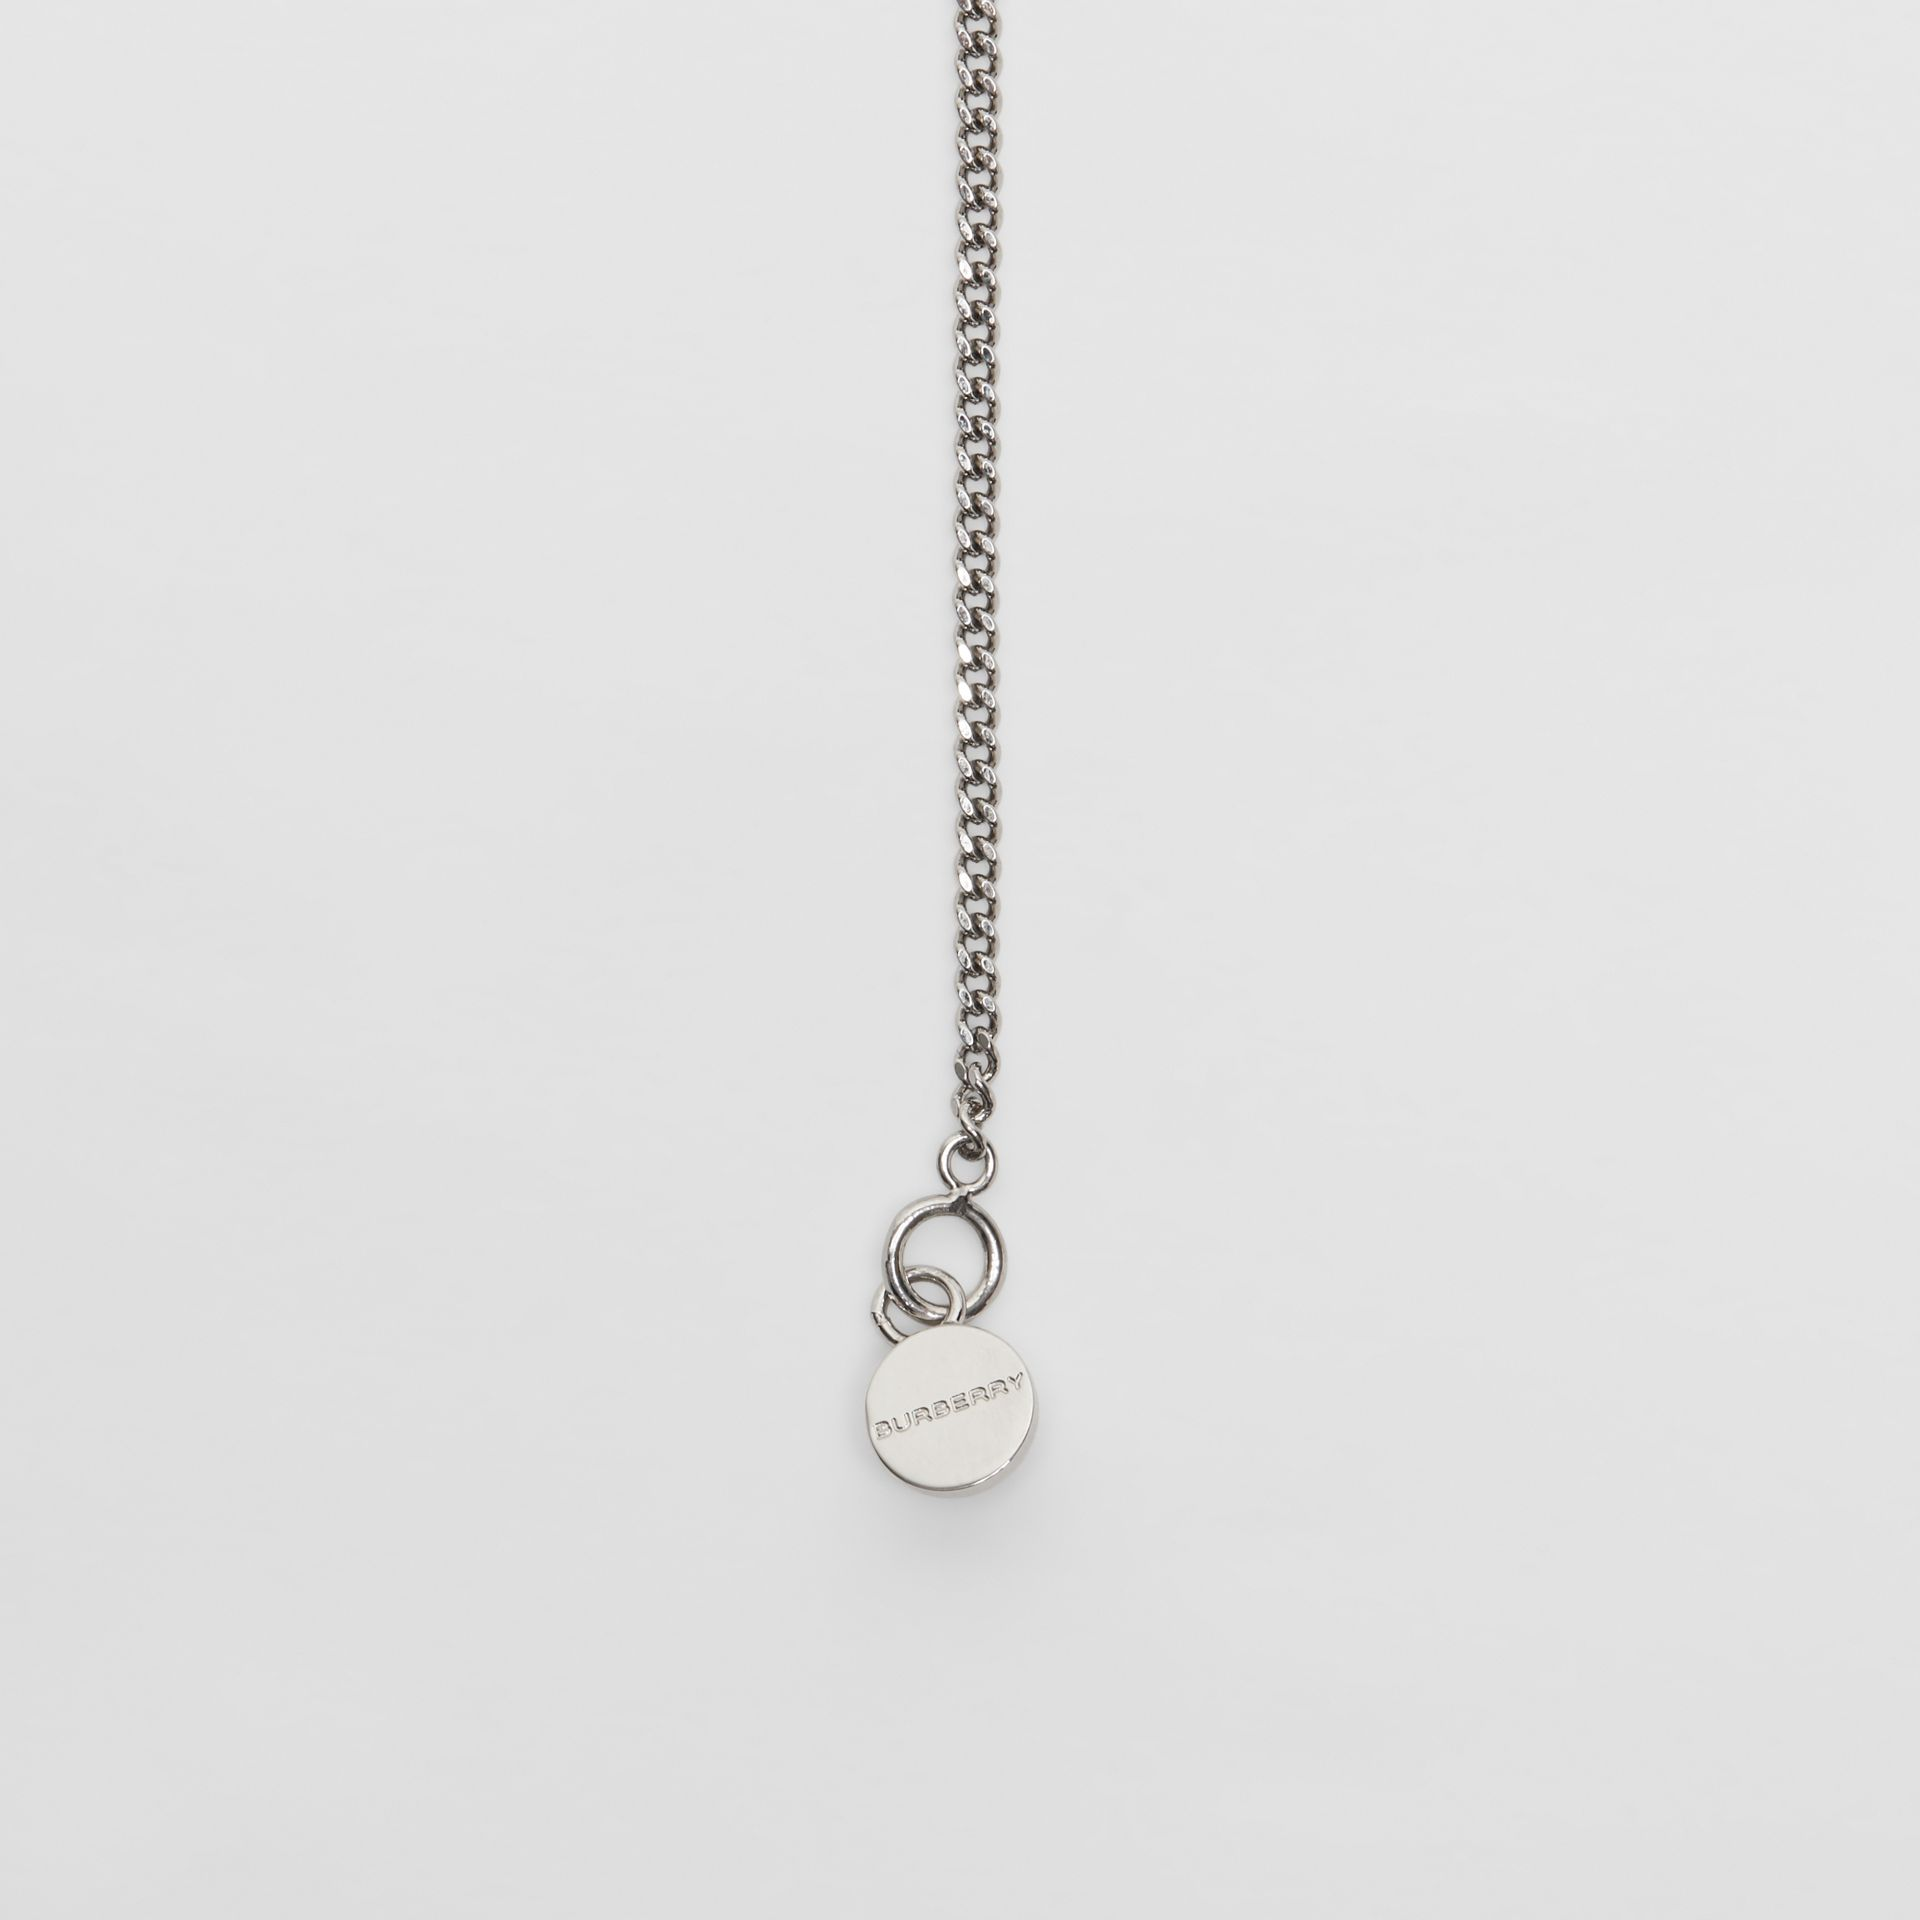 Palladium-plated Chain Necklace in Palladio - Women | Burberry - gallery image 1